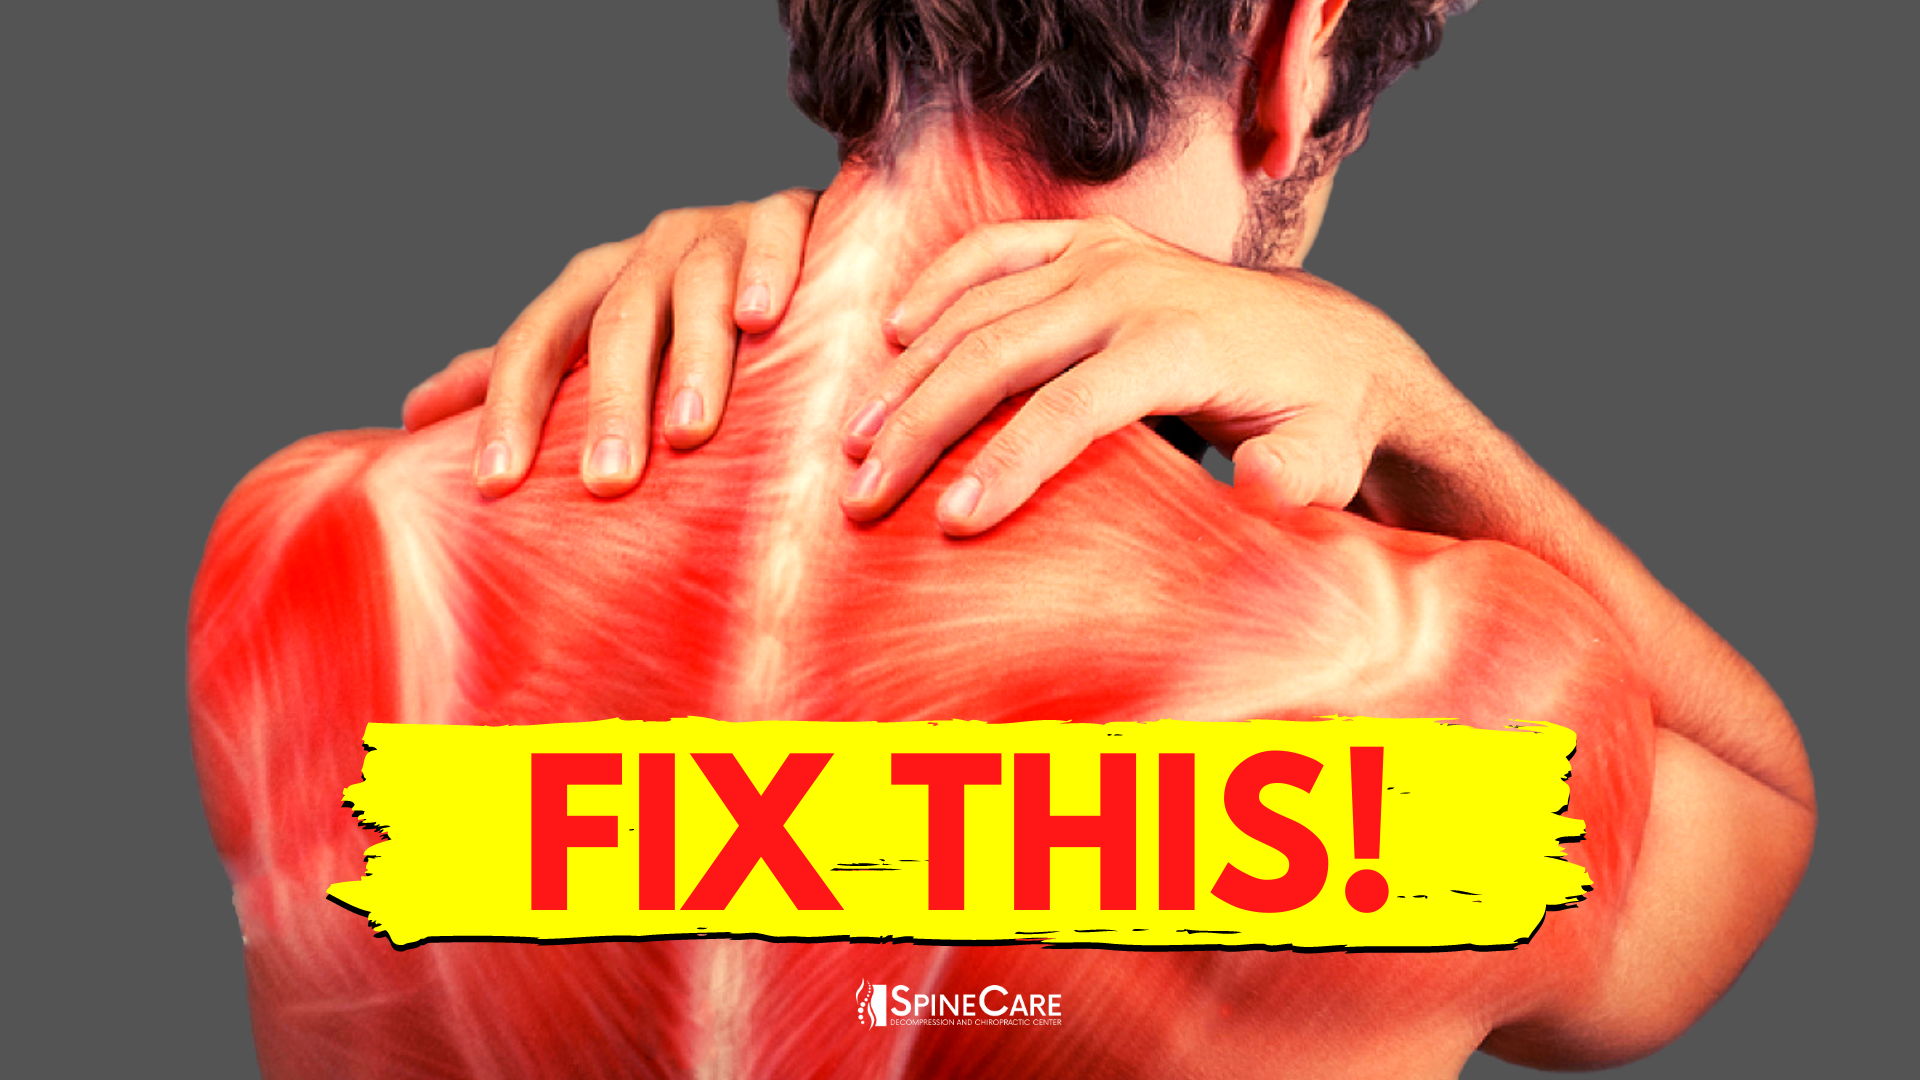 How to Fix a Tight Neck in 30 SECONDS | SpineCare | St. Joseph, Michigan Chiropractor